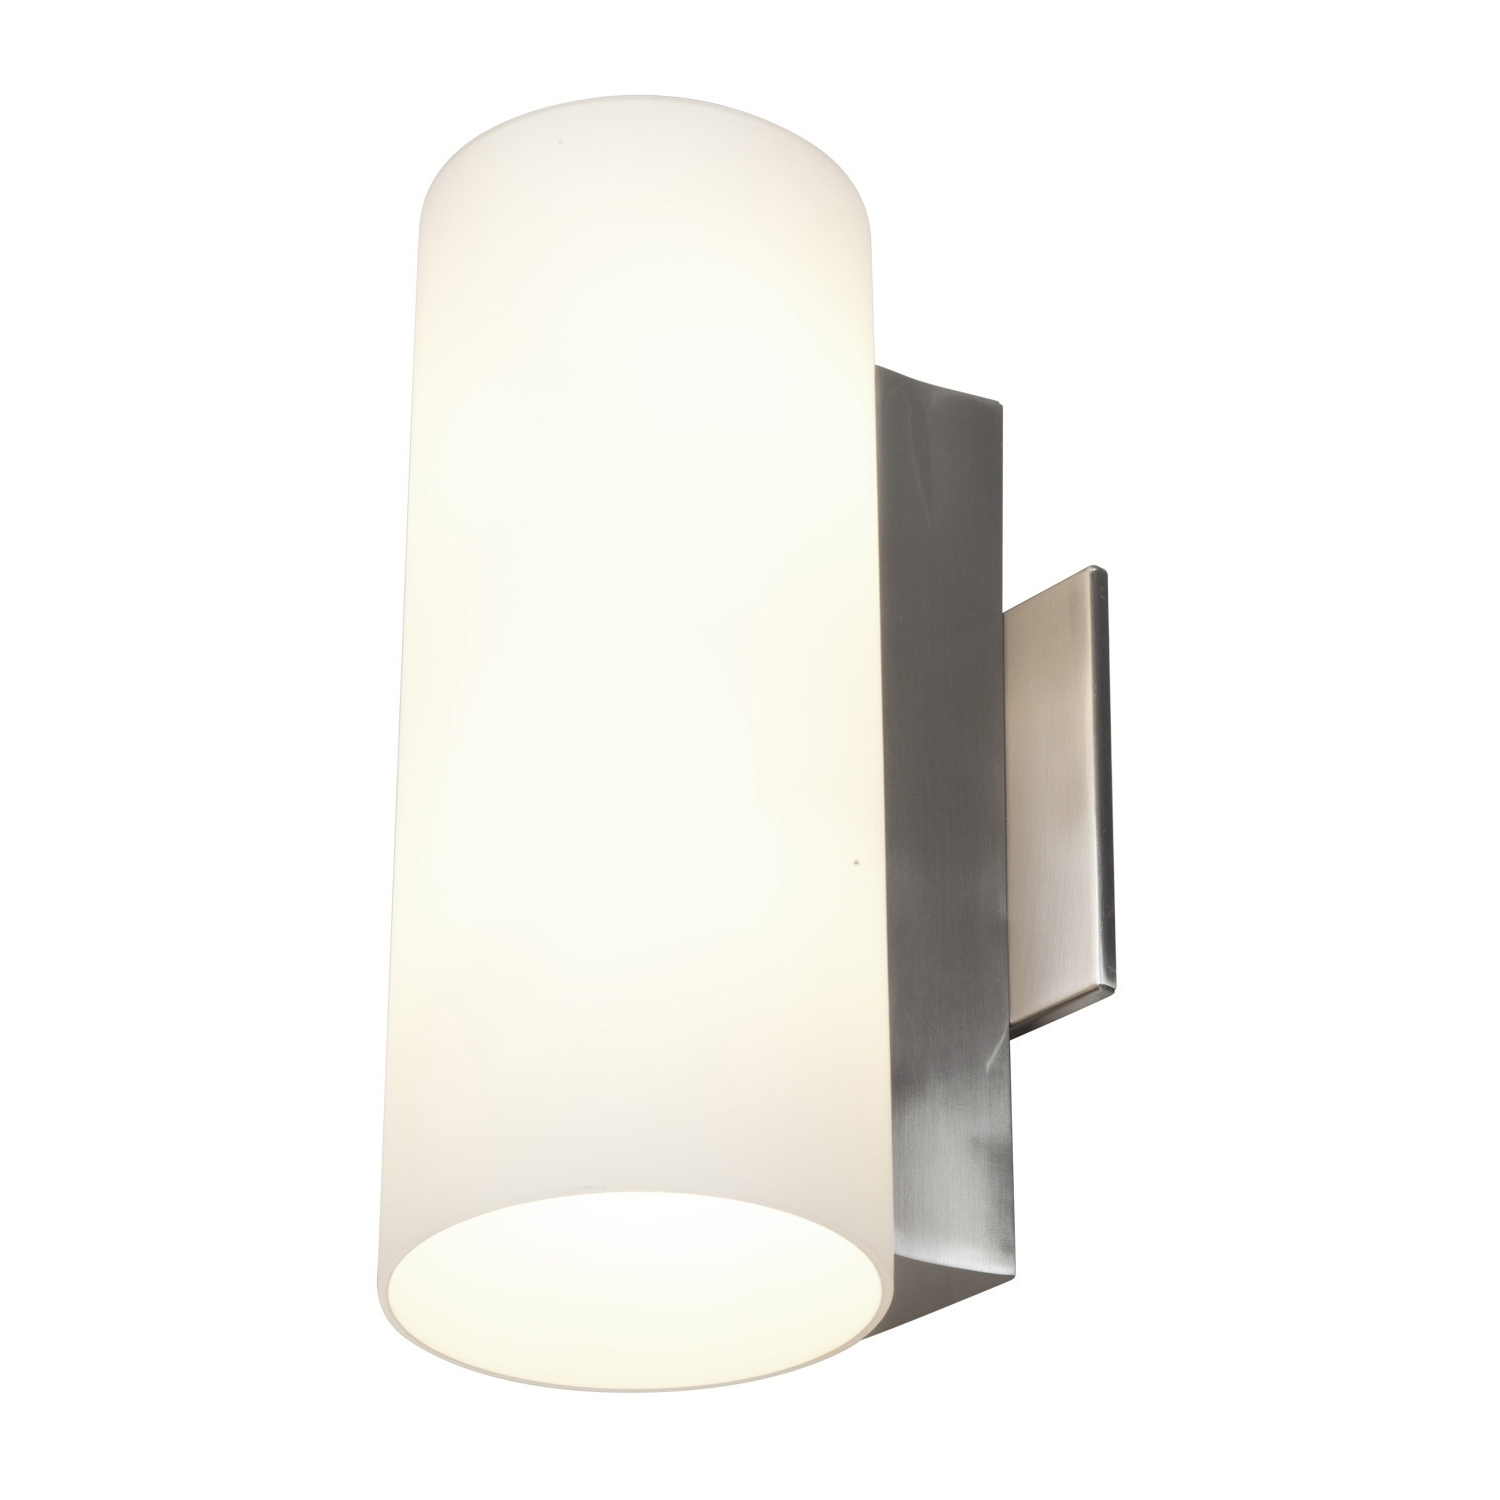 Well Known Cheap Outdoor Wall Lighting Fixtures Regarding Stainless Steel Wall Mounted Sconce Light Fixtures With White Lamp (View 19 of 20)